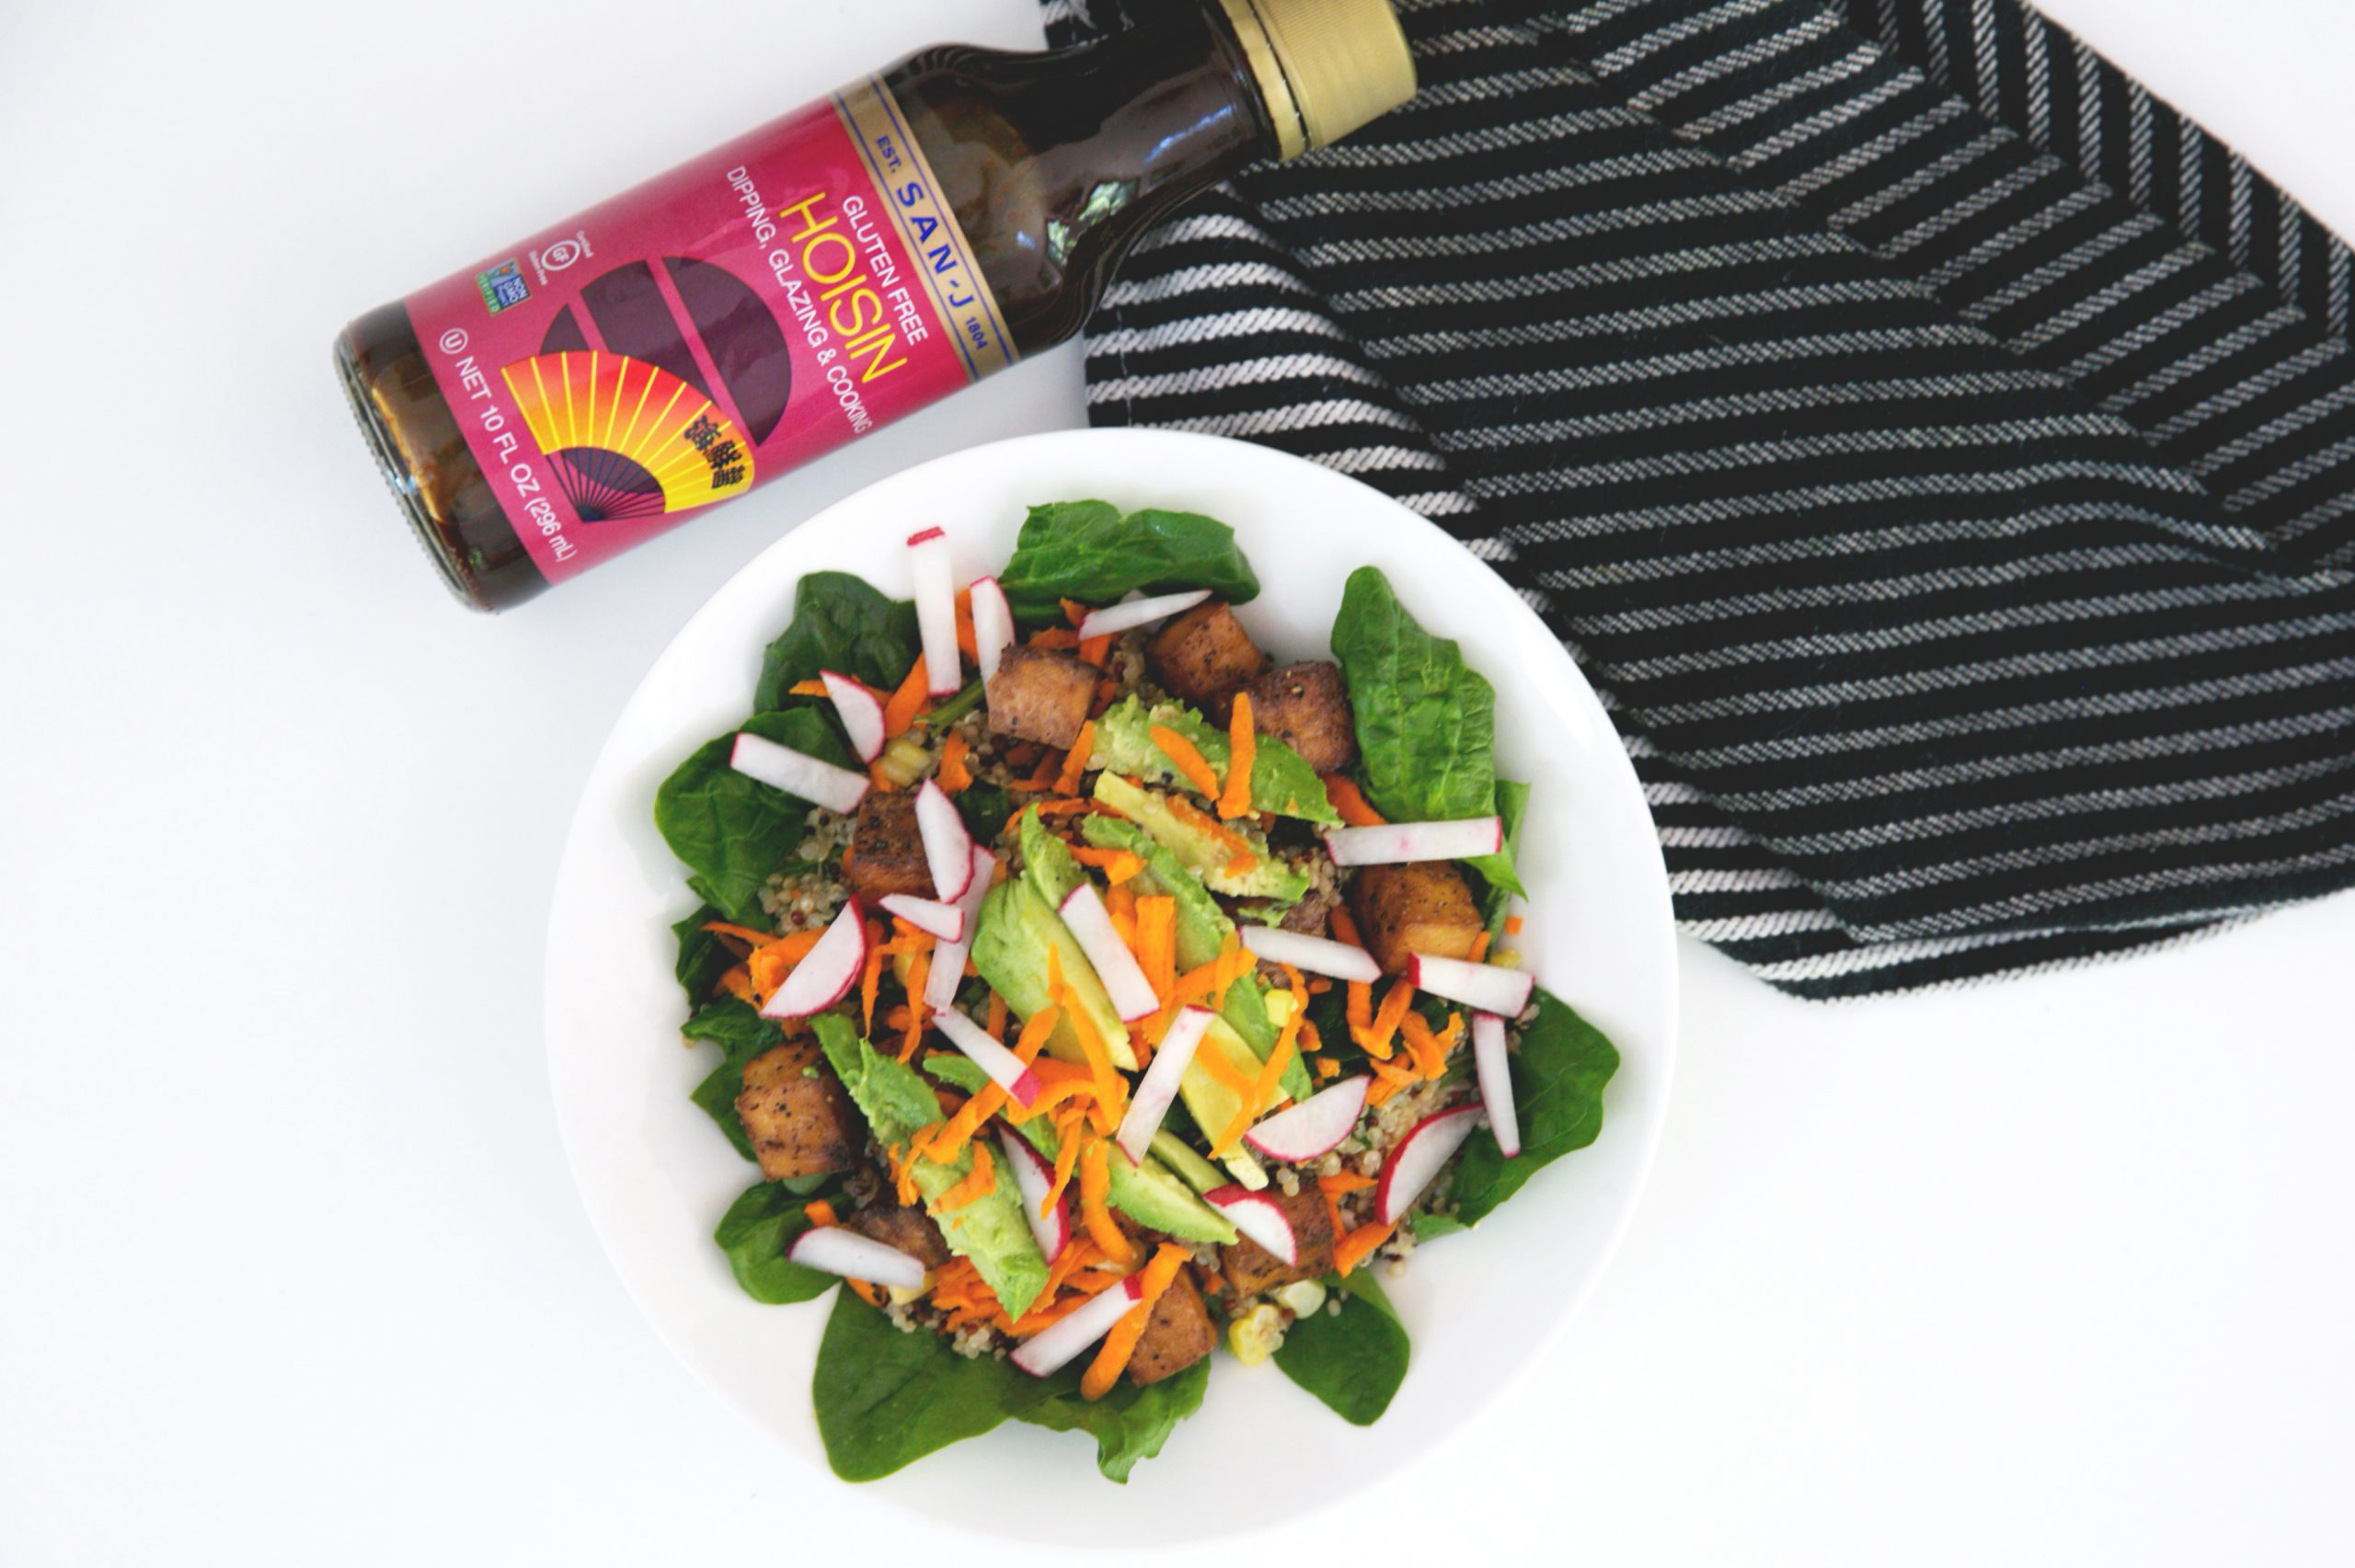 A bowl filled with hoisin grains on a table with a serviette and a bottle of hoisin san-j sauce